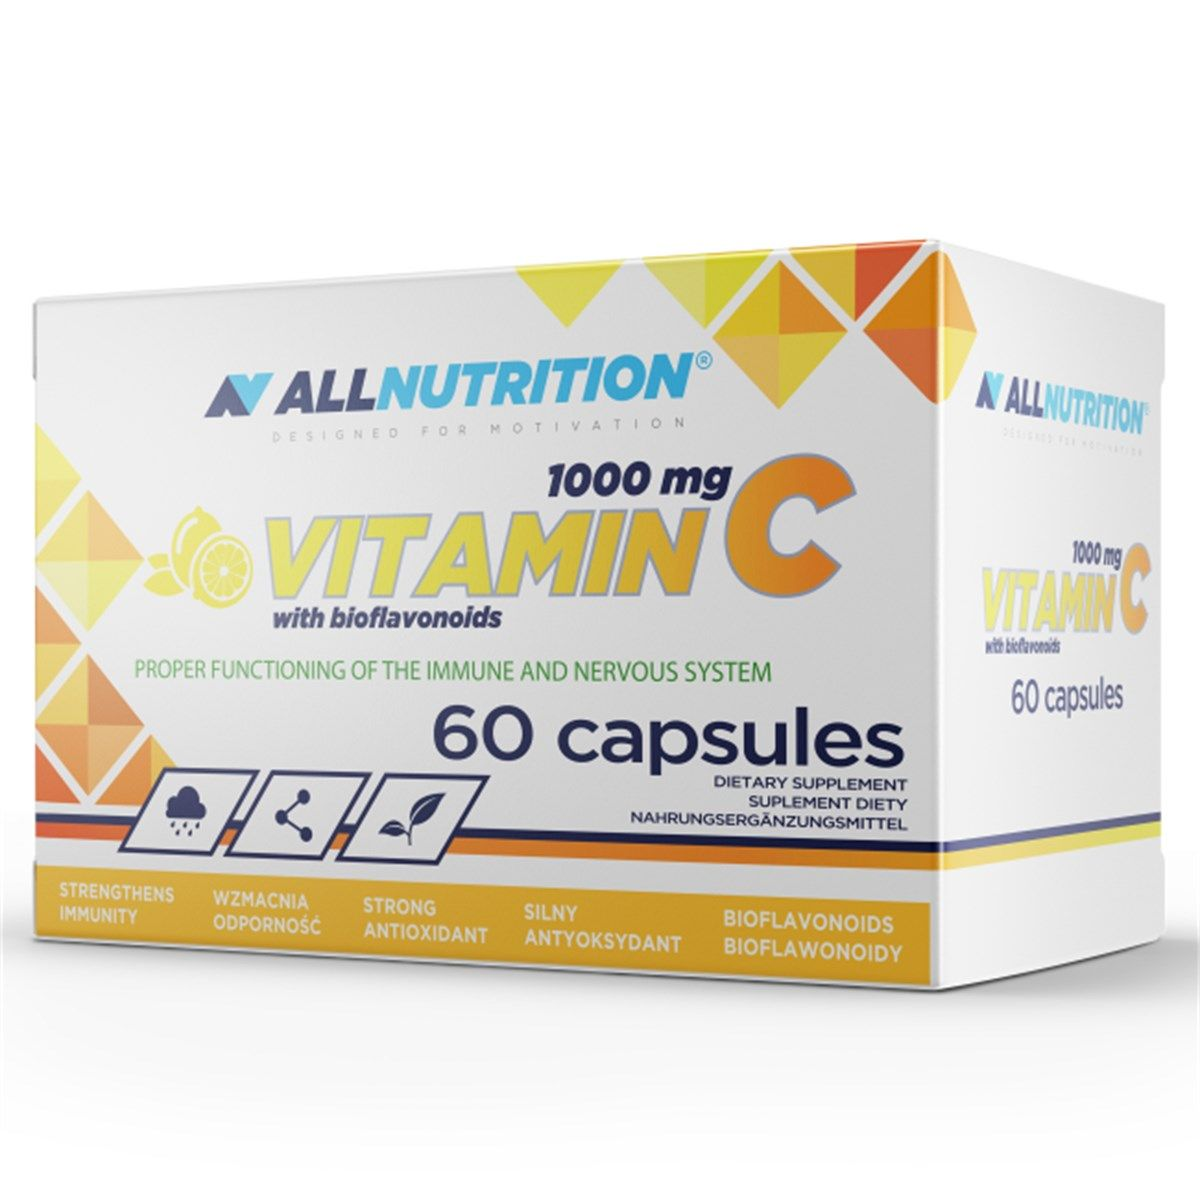 All Nutrition Vitamin C